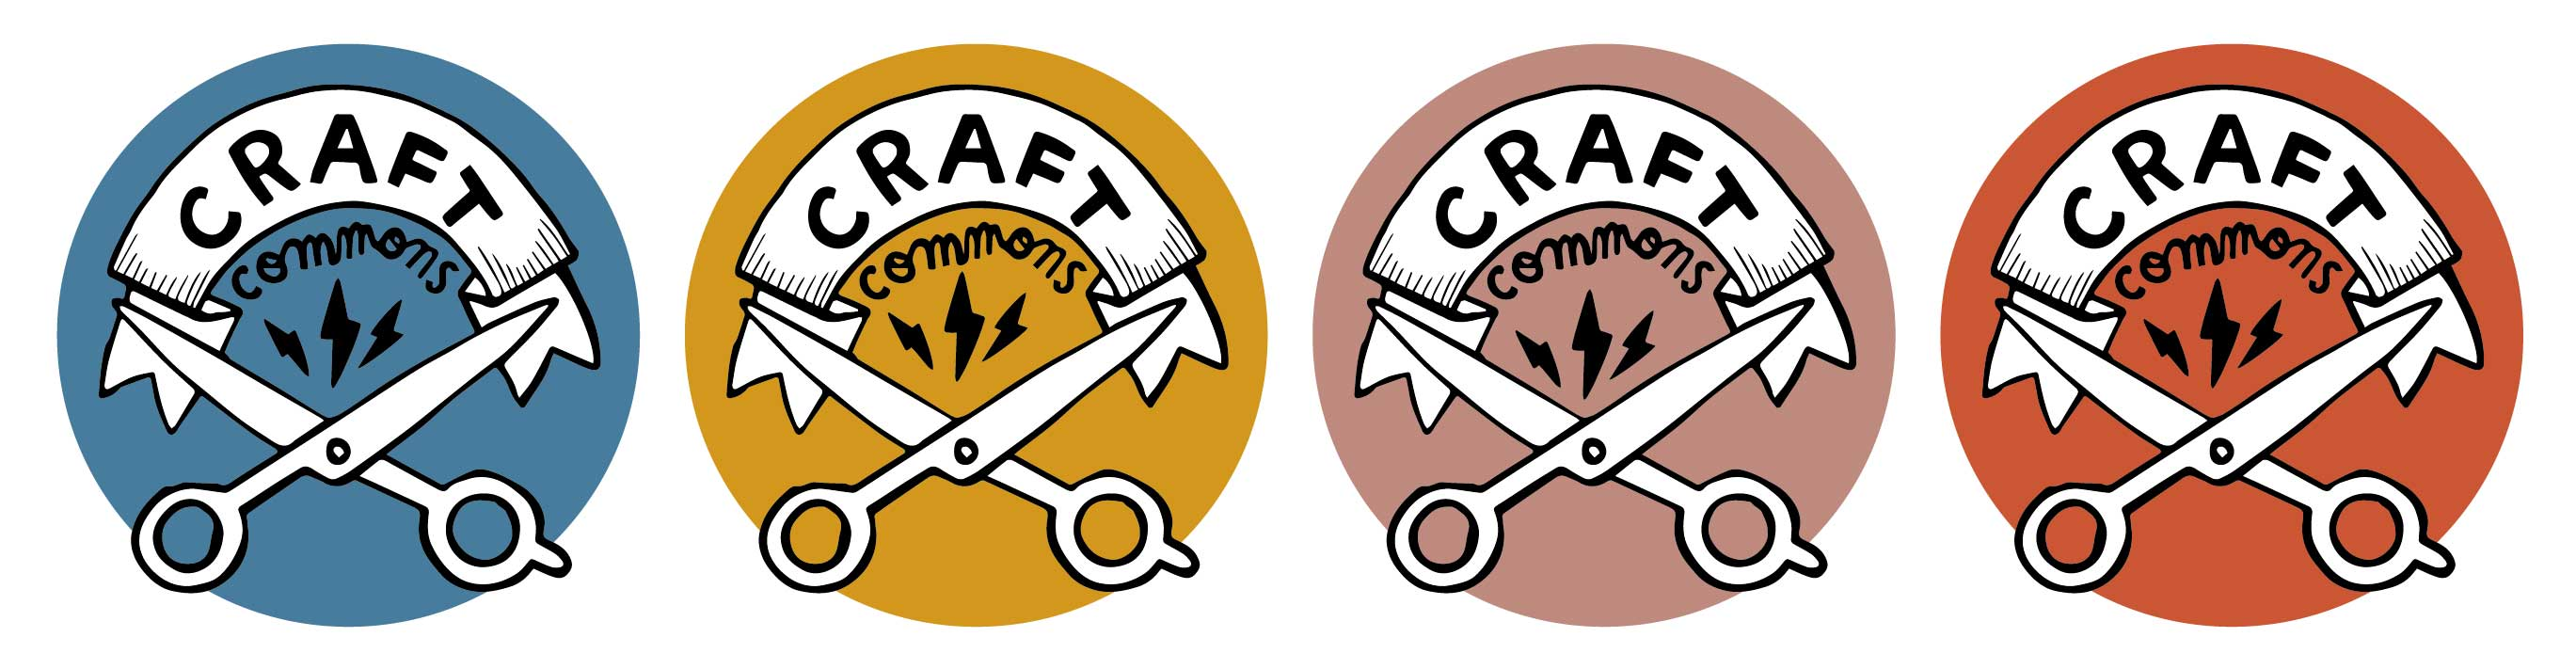 Logo for the Craft Commons project in the various brand colours